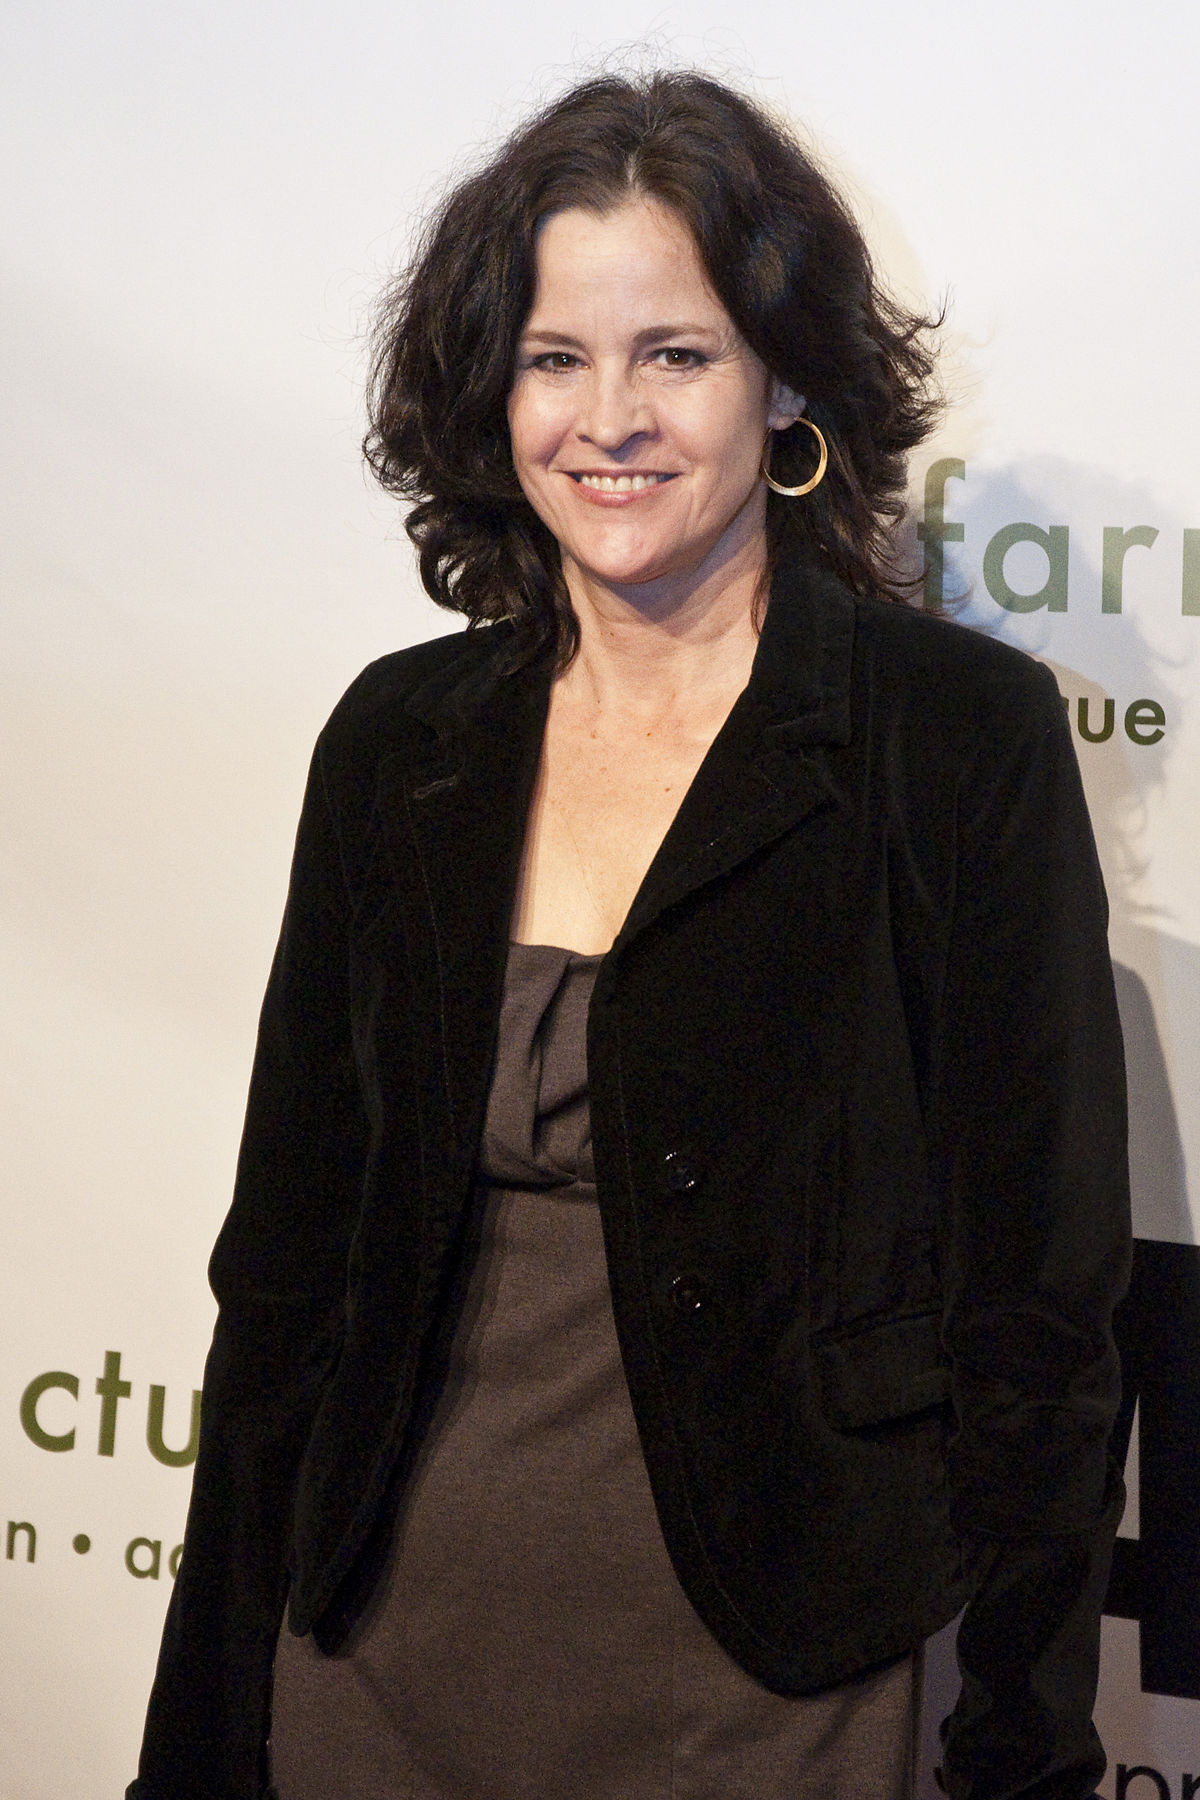 Ally Sheedy - Wikipedia